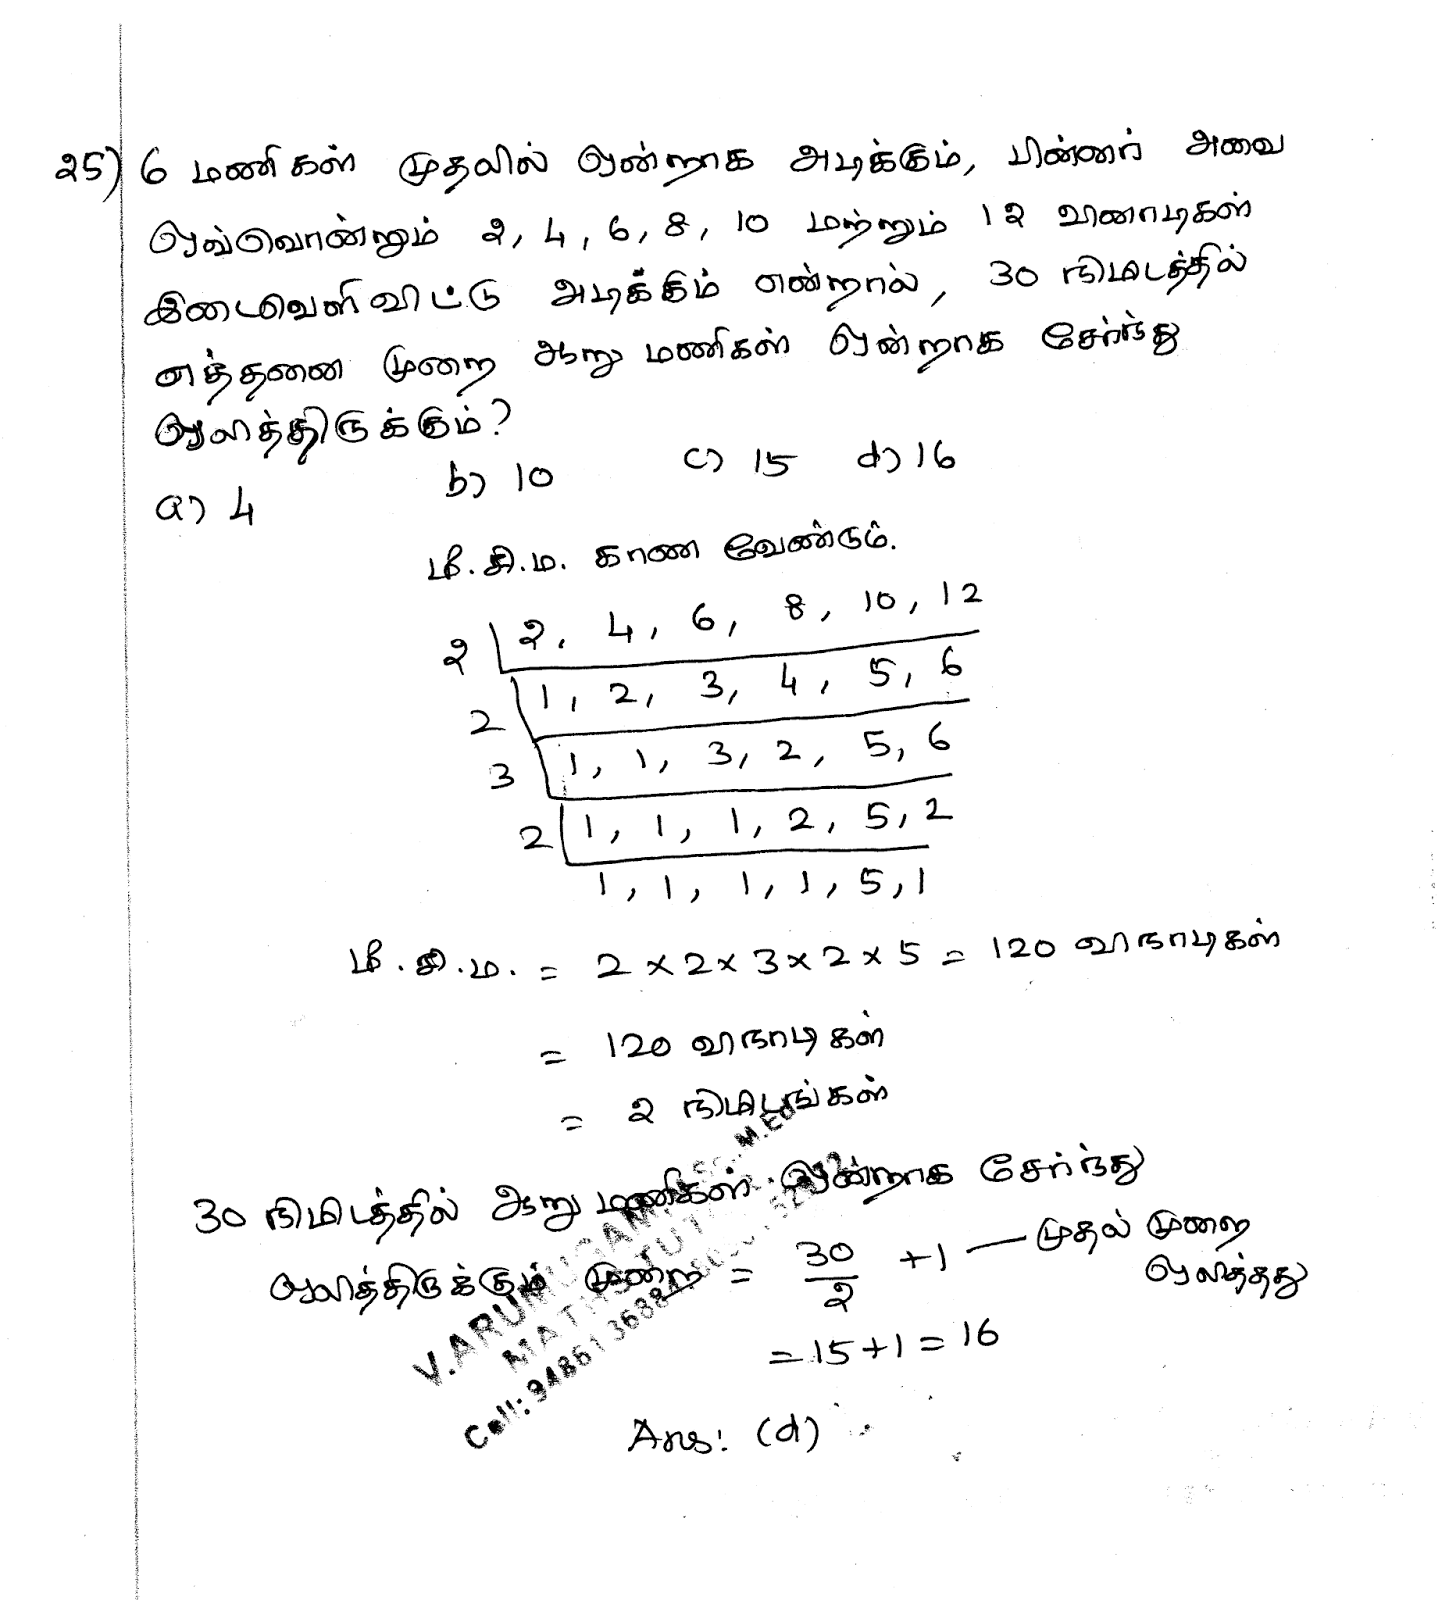 TNPSC - GROUP2 NON INTERVIEW - 2016 EXAM (DATE: 24.1.2016) QUESTIONS - 11